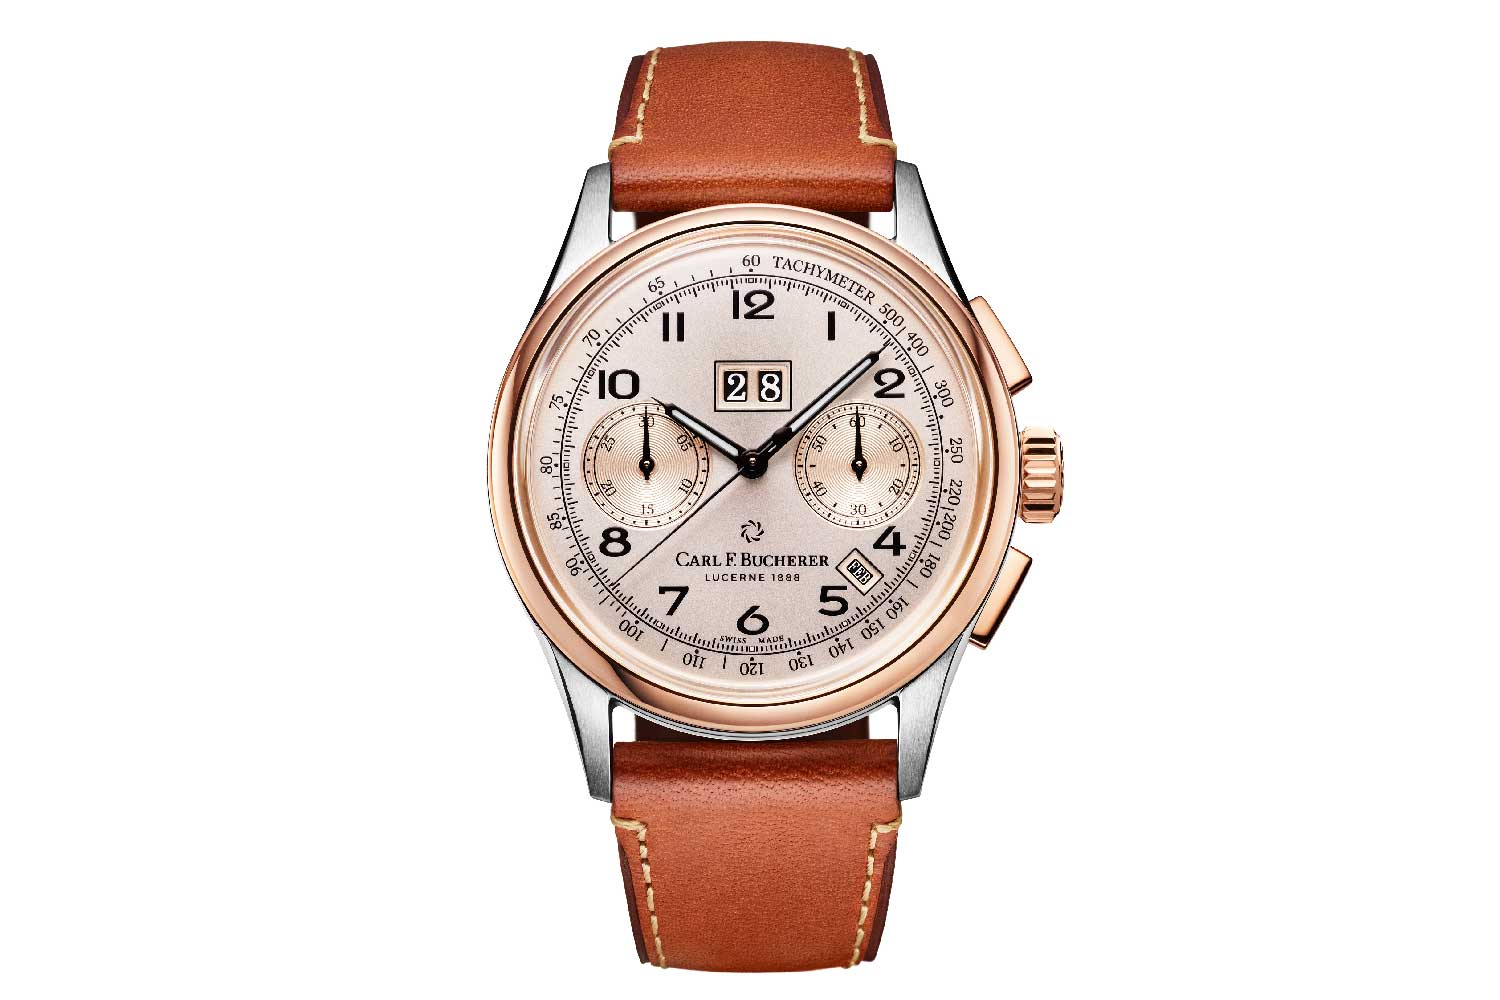 Introduced in 2019, this bi-colour Heritage BiCompax Annual features a rose-and-champagne-coloured dial, reminiscent of the 1956 timepiece that inspired the watch.